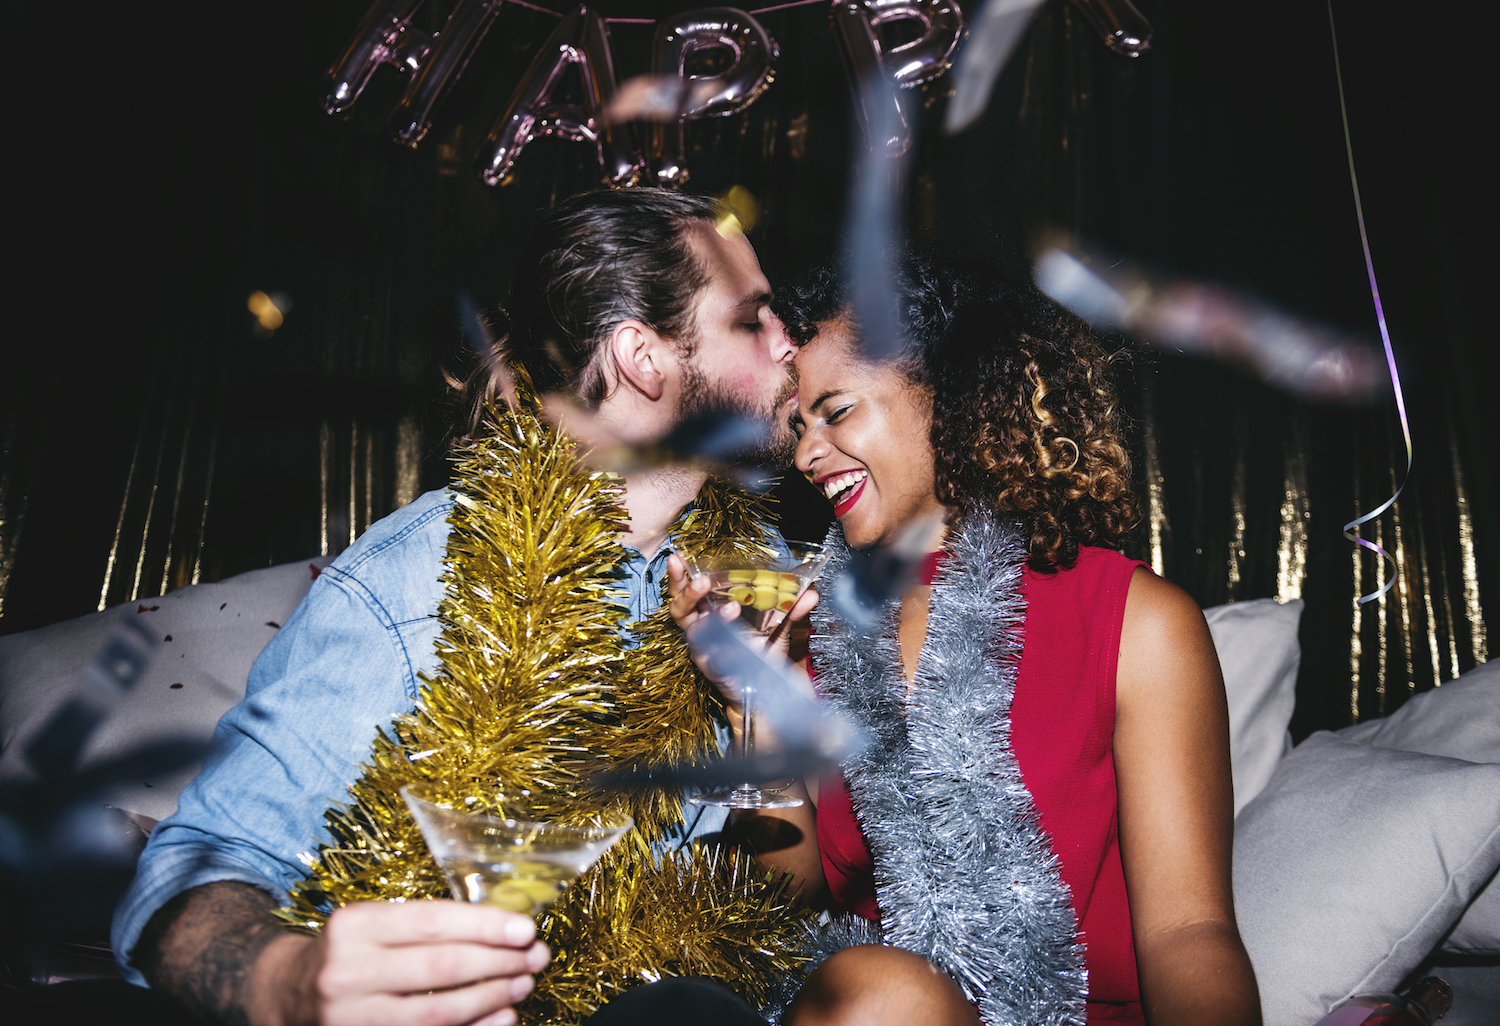 How to Have the Best Charleston New Year's Eve